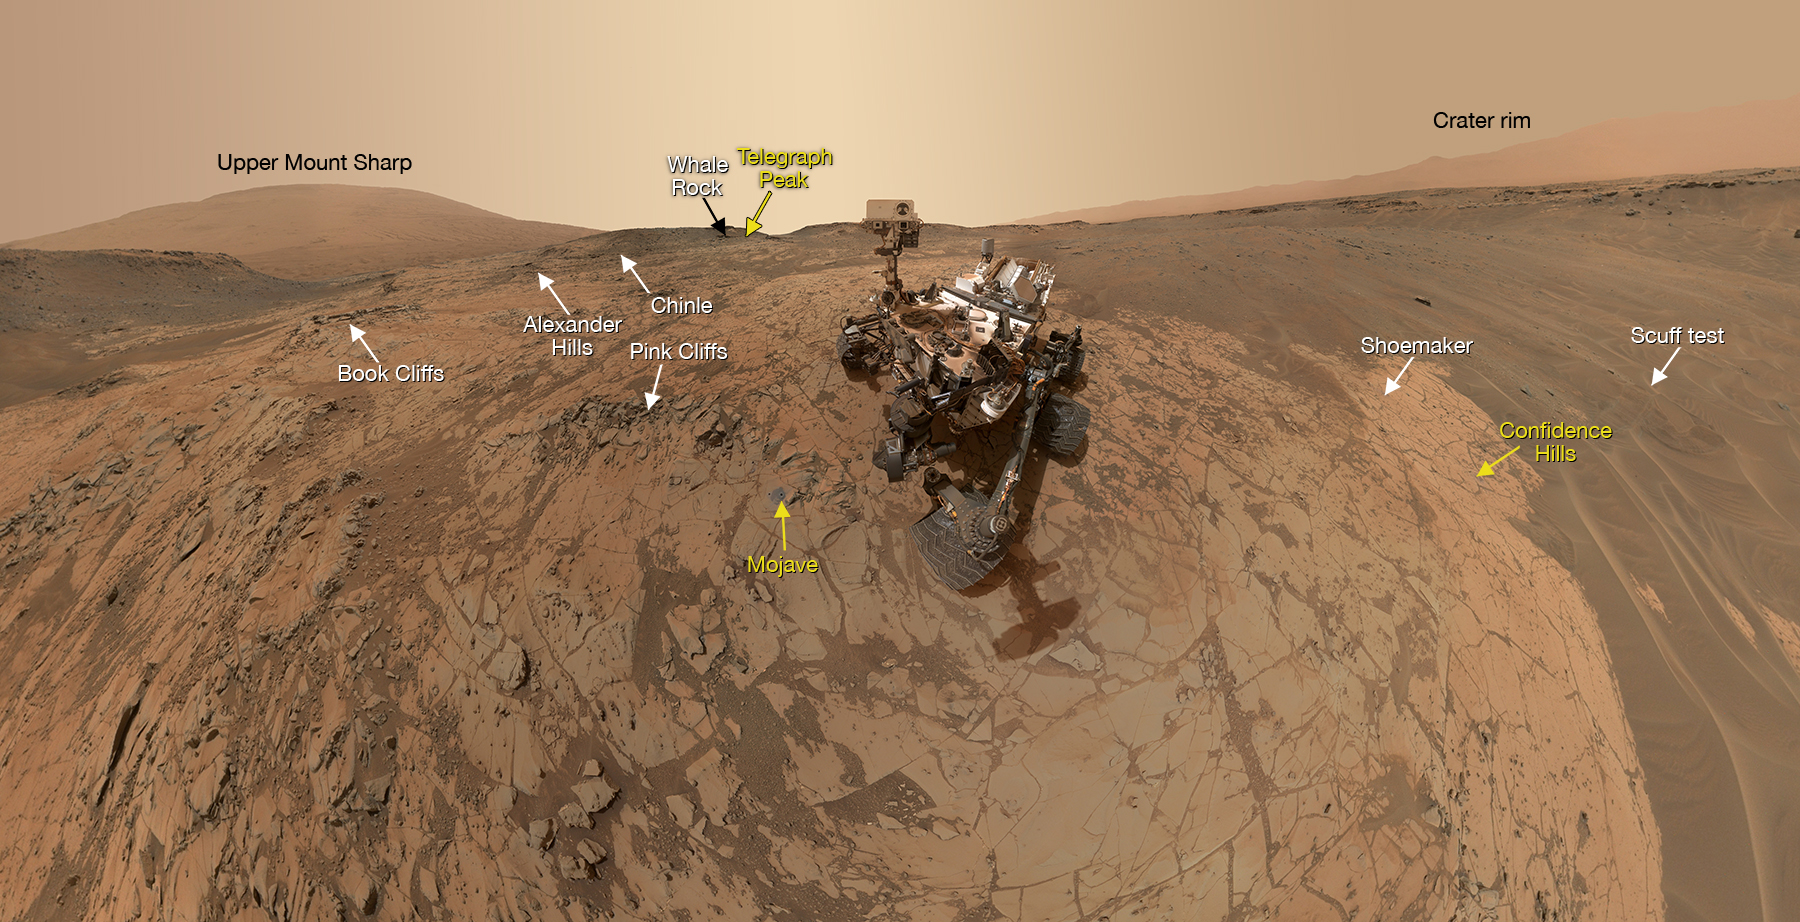 Self-portrait of the Curiosity rover in Gale Crater, Mars. The scientific investigation of this part of Mars combines information from orbital assets and rover observations.